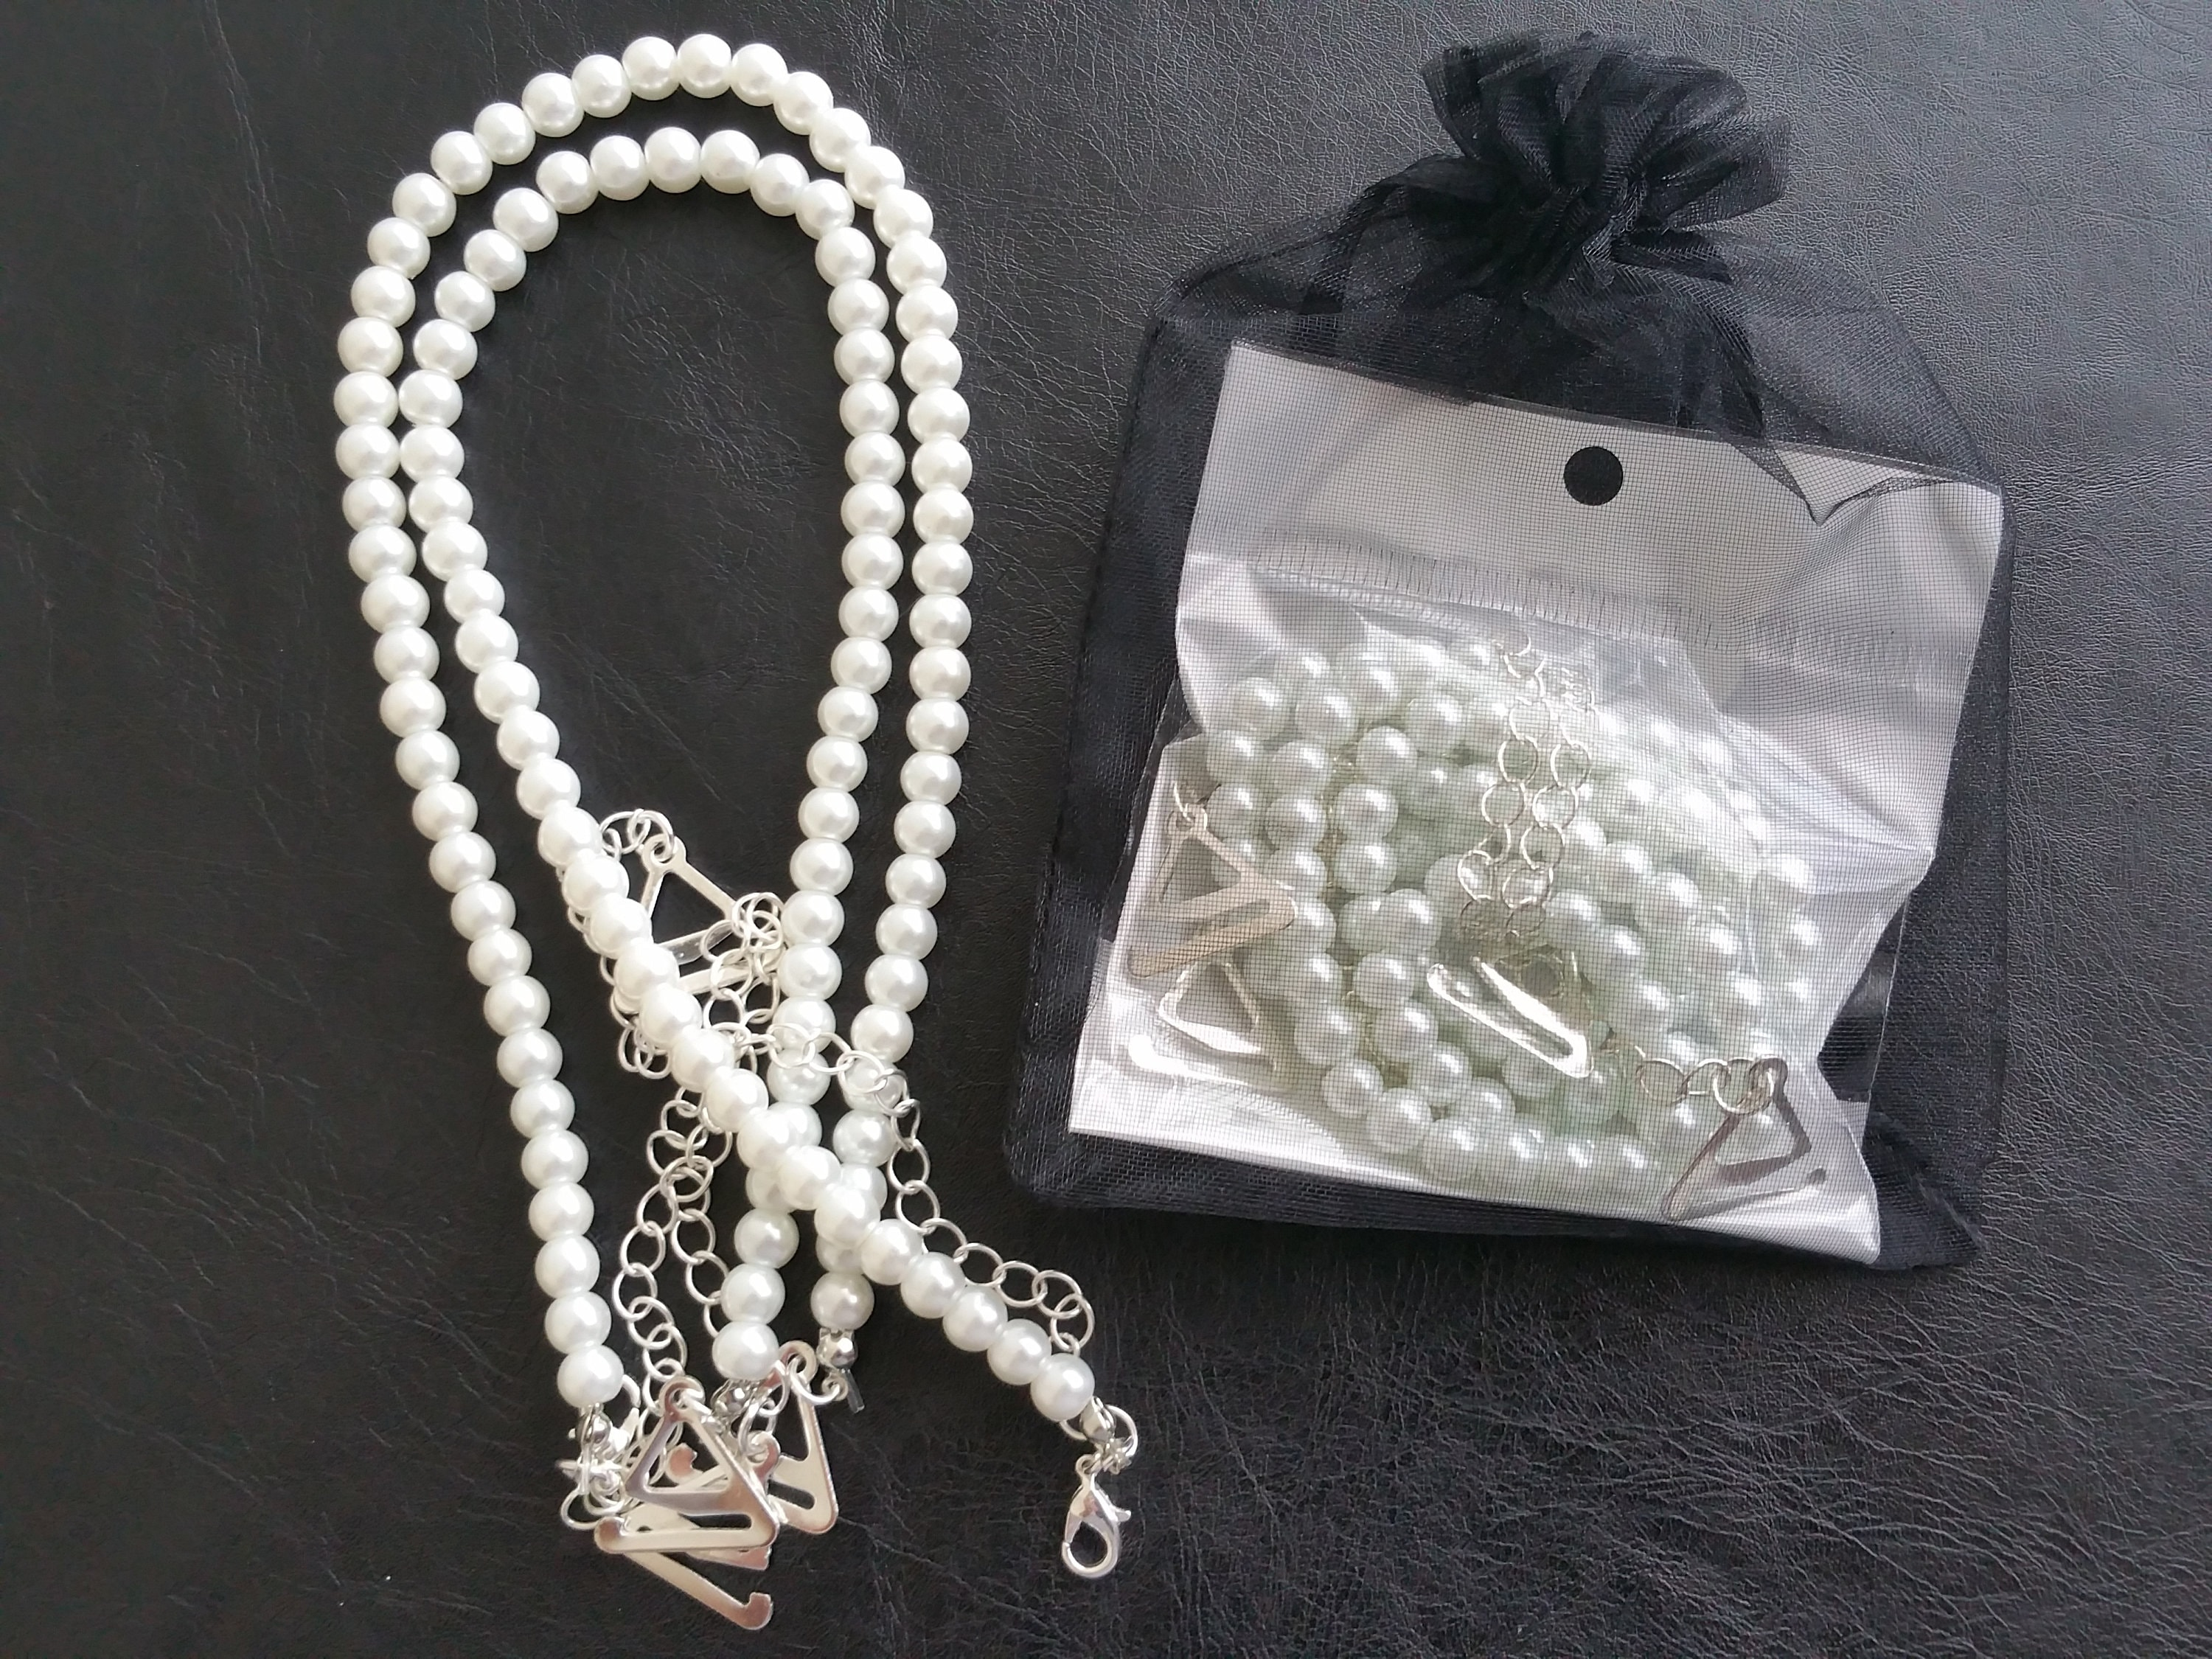 e118905029 Pearl bra straps in gift bag Adjustable and detachable